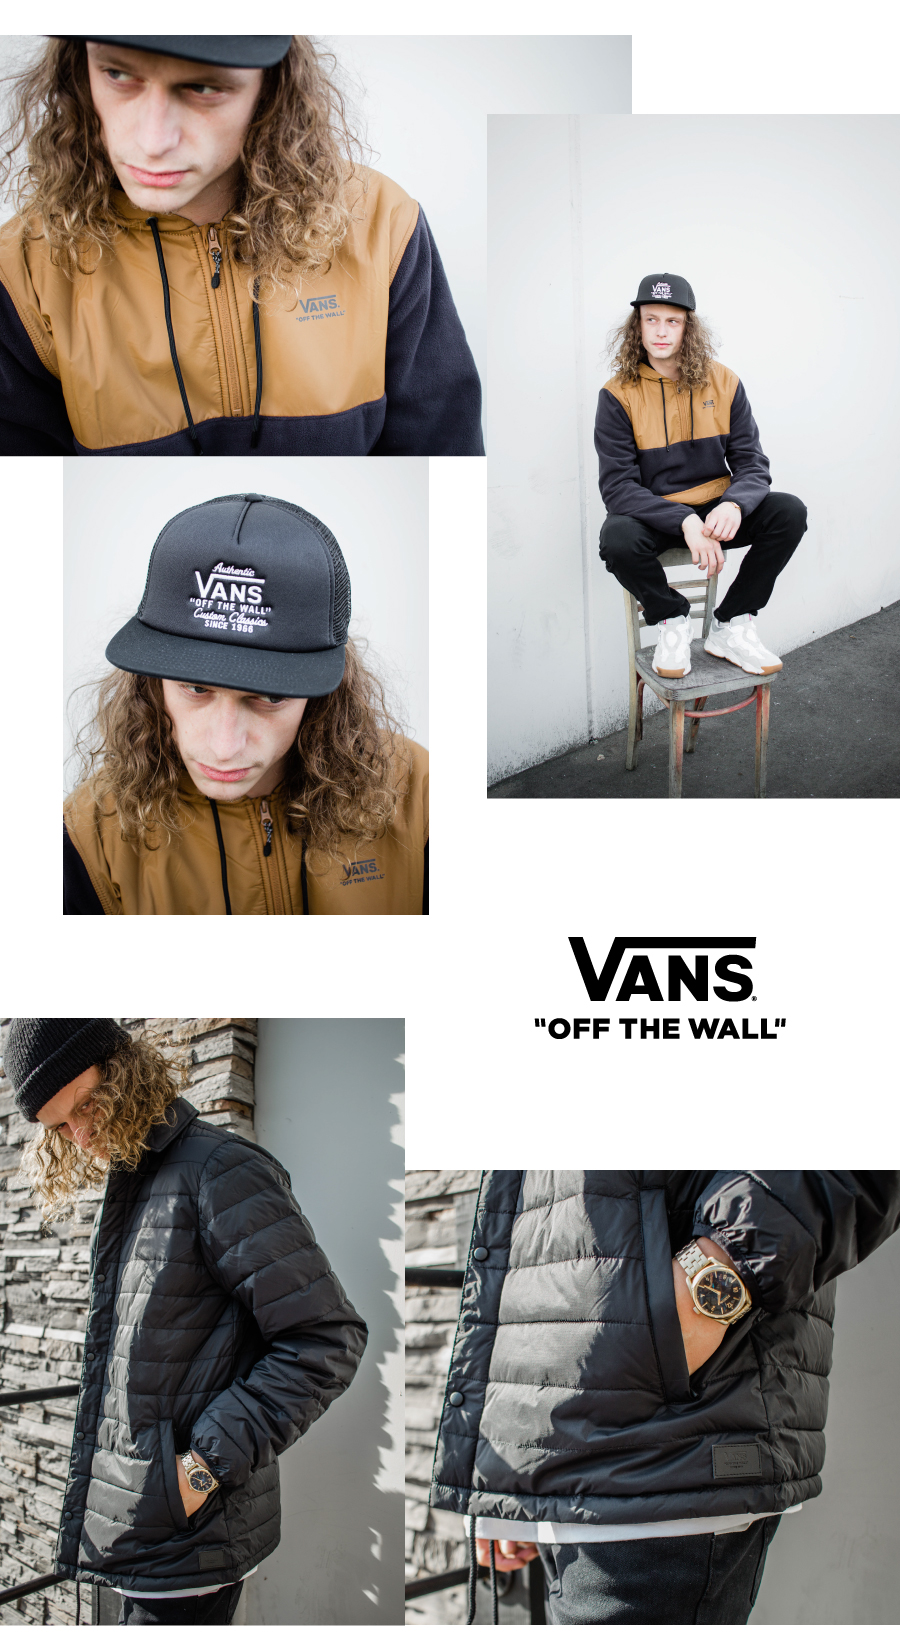 Mens vans hat and jacket